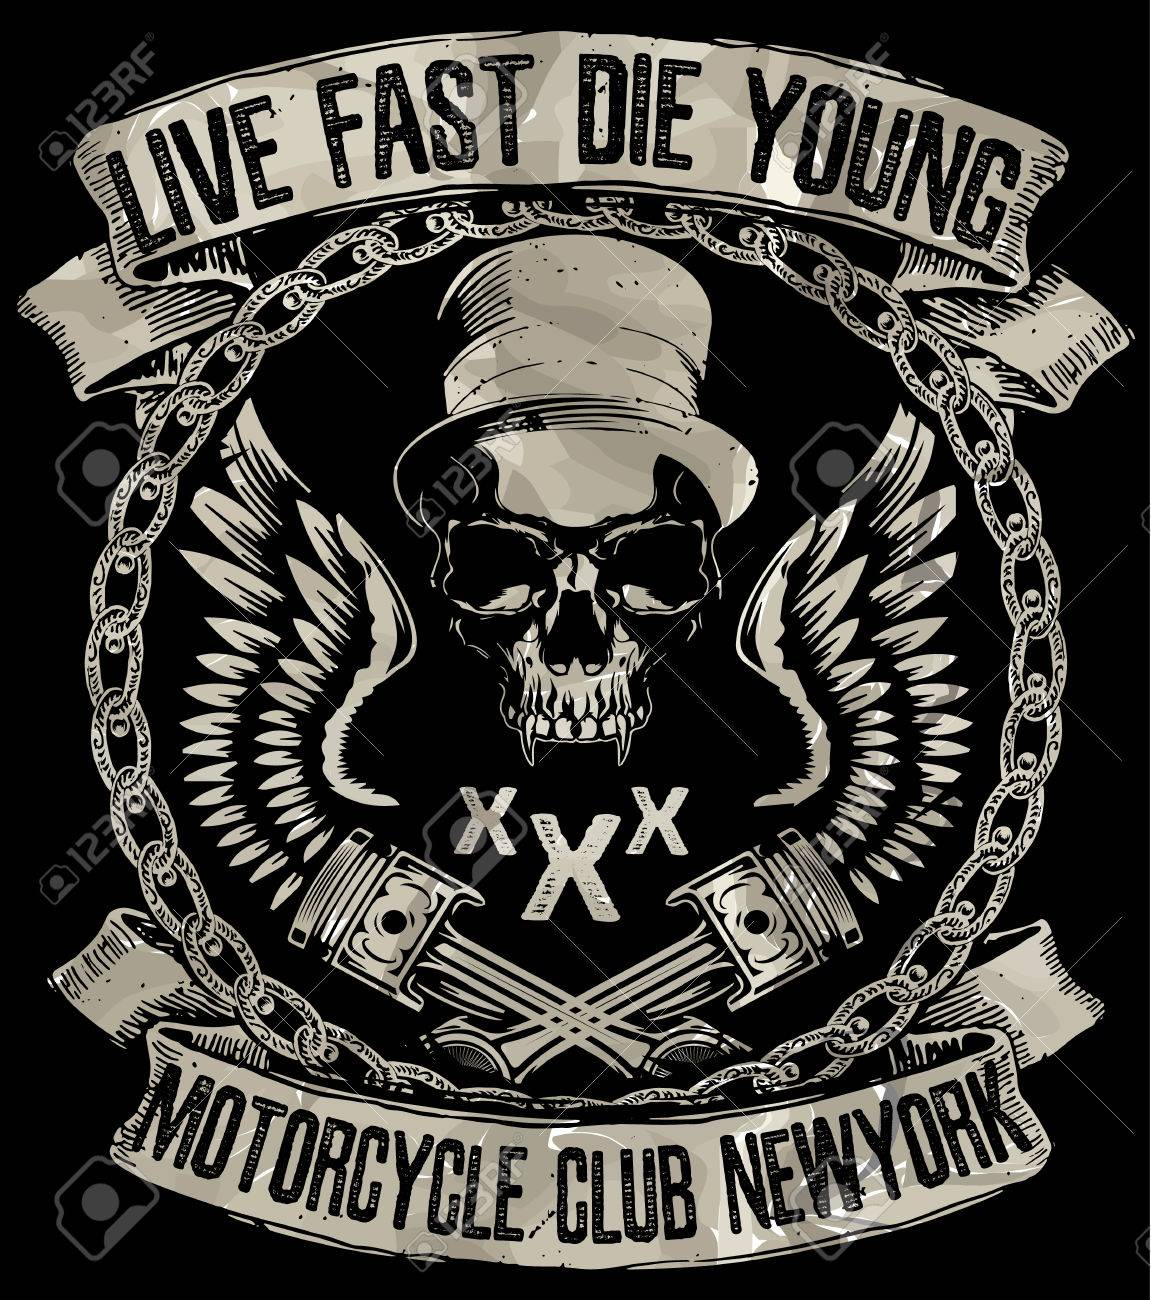 Vintage motorcycle. Hand drawn grunge vintage illustration with hand lettering and a retro bike. This illustration can be used as a print on t-shirts and bags; stationary or as a poster. - 56802978